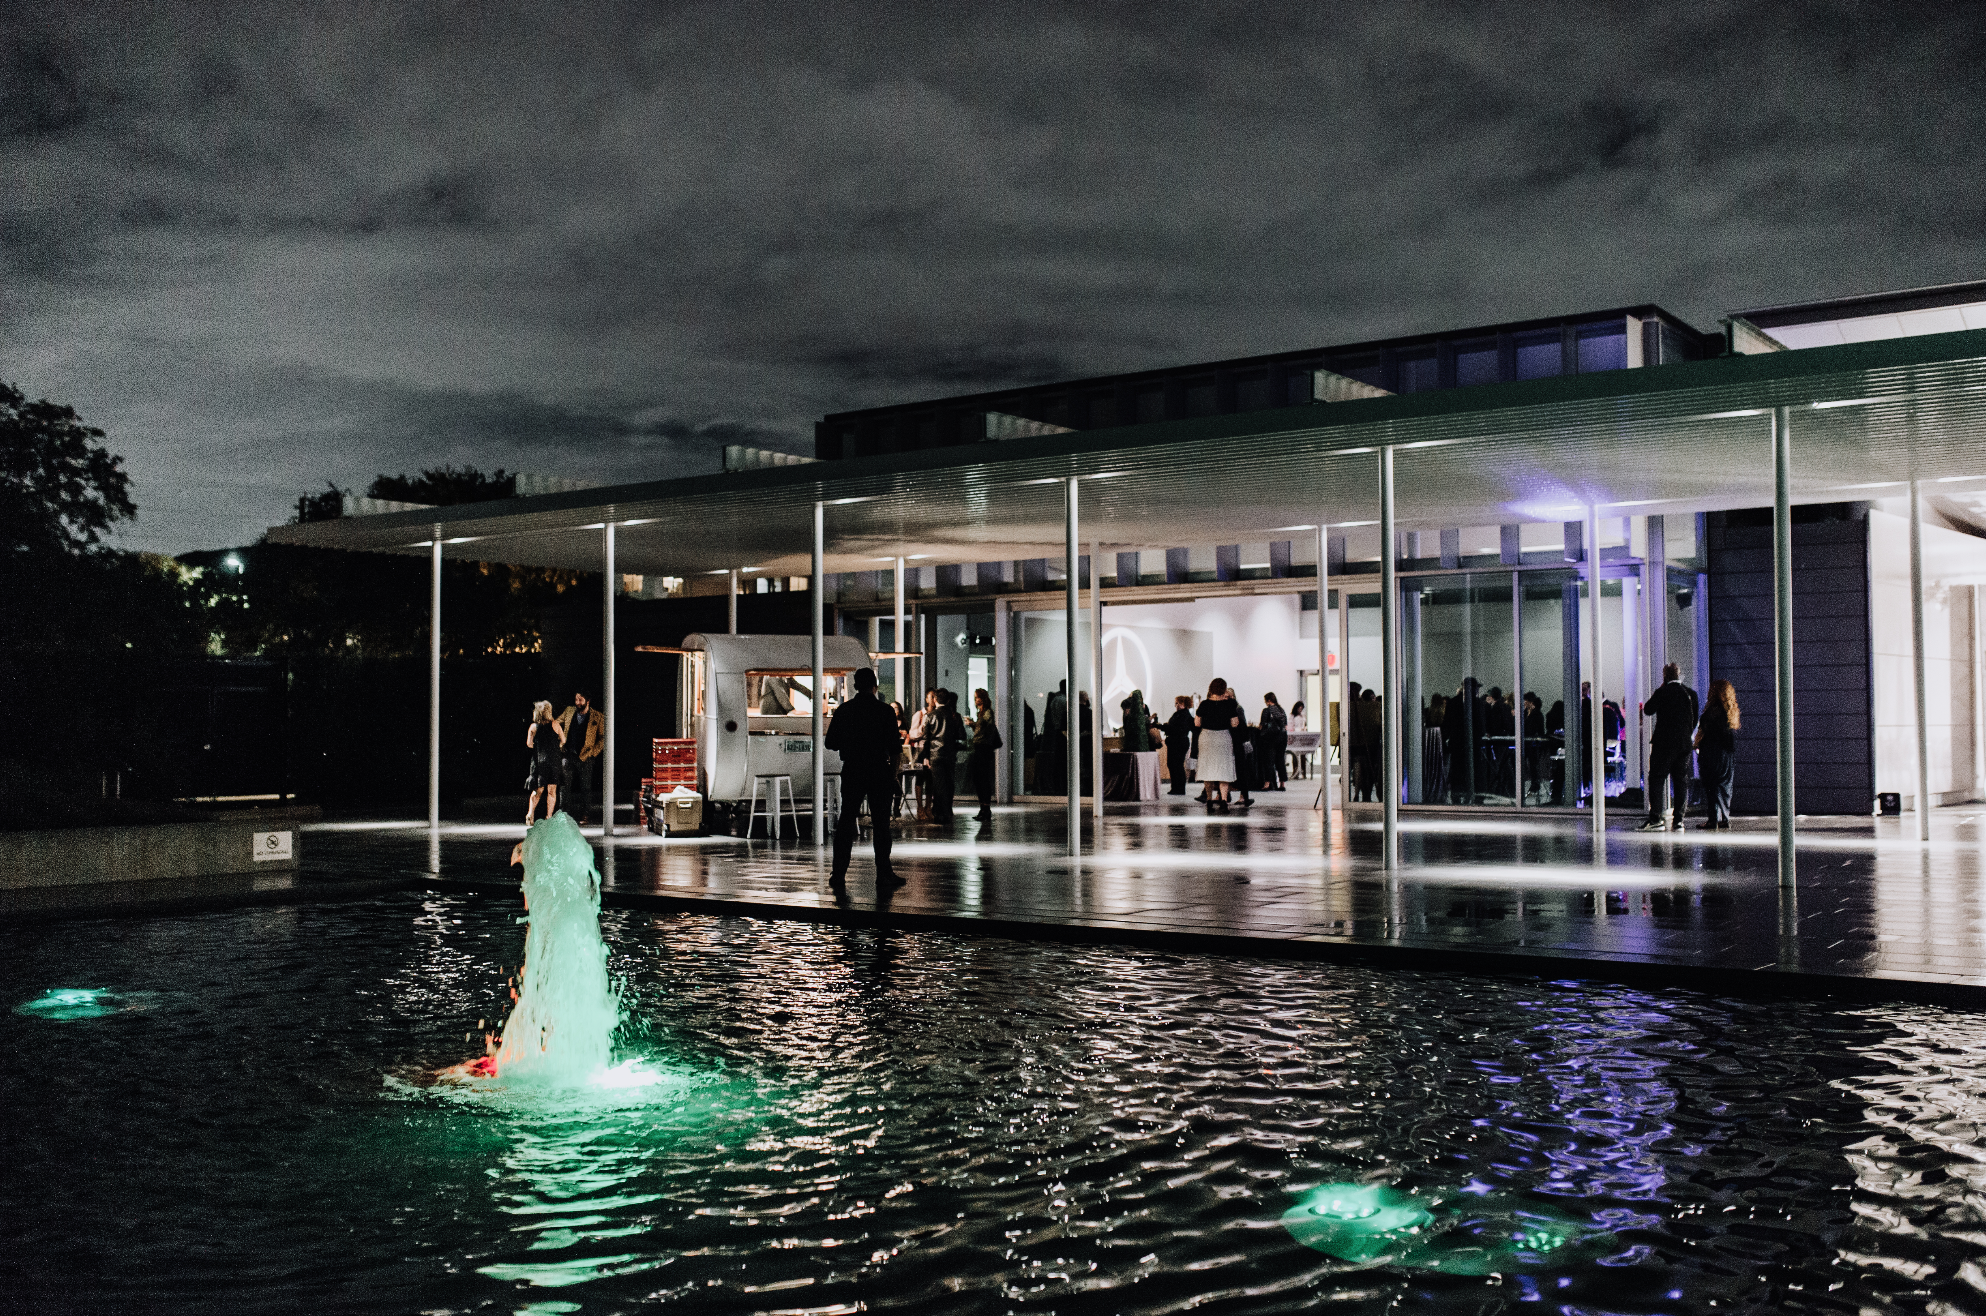 We have mastered the art of lighting design—and that means we break the rules once in a while. The fountain lights pictured above shift color temperature dynamically throughout the evening.